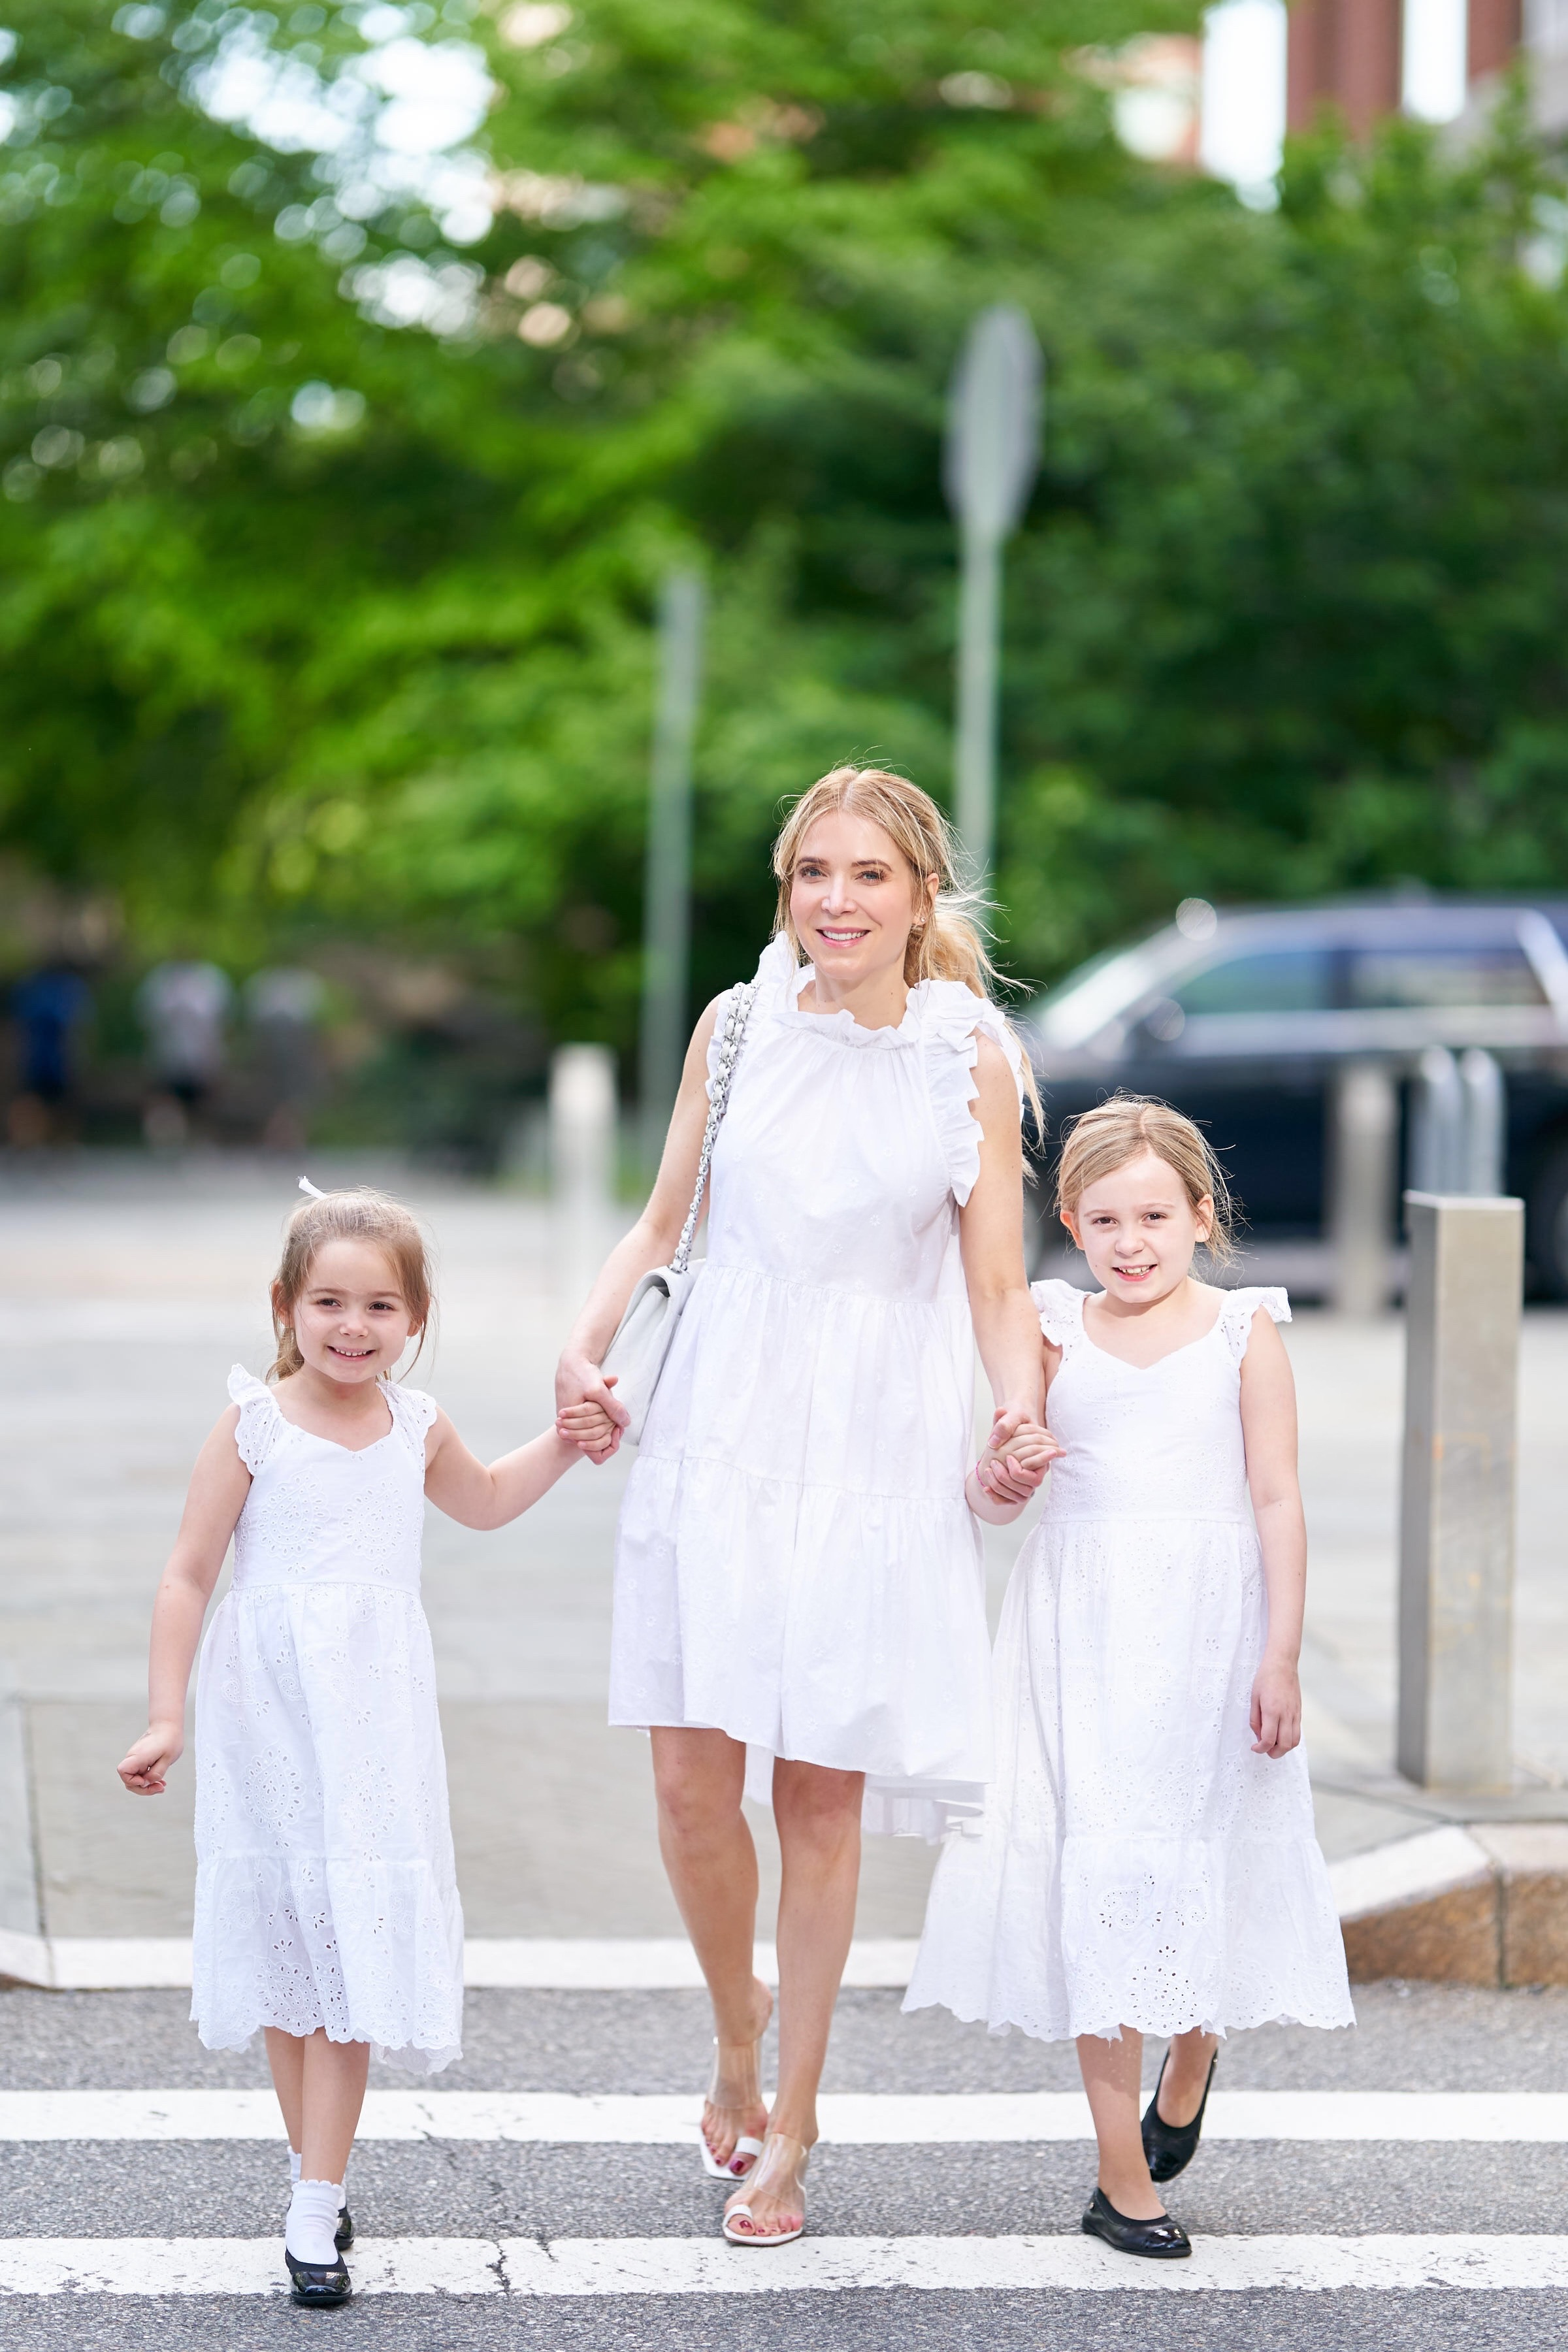 About the Outfits, Laura Bonner, little girls dresses, Mommy daughter style, white dresses, www.abouttheoutfits.com